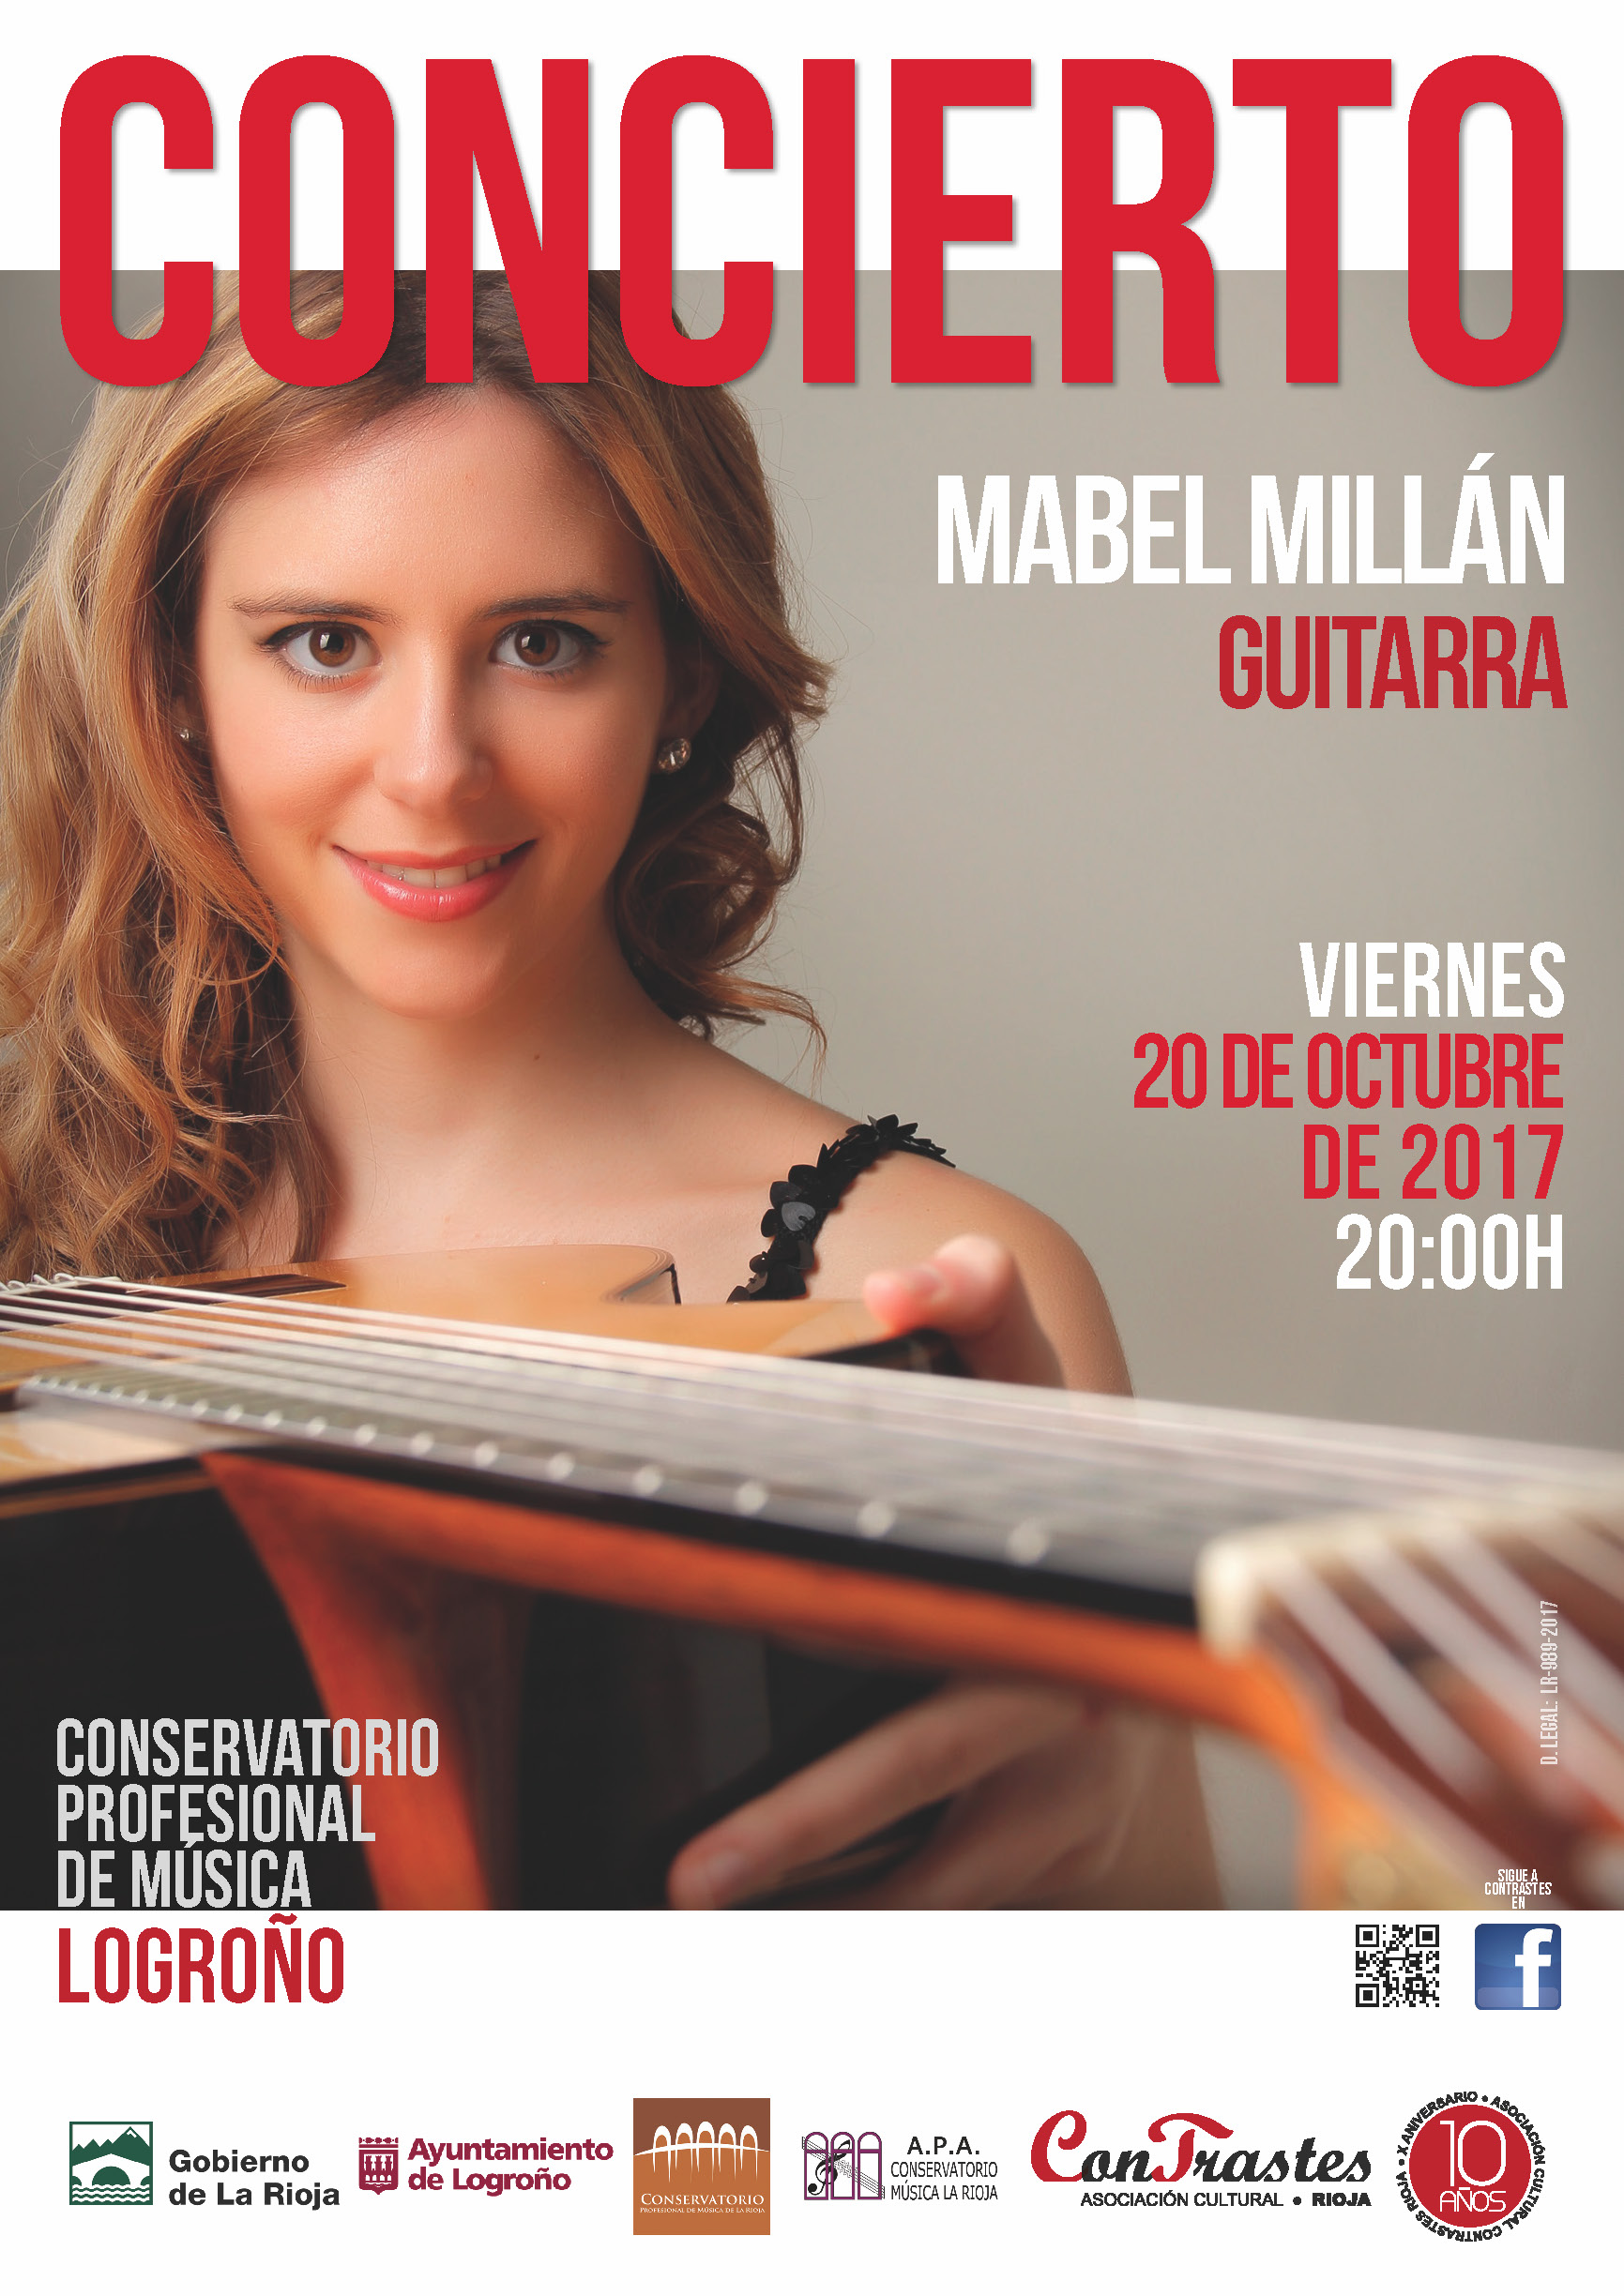 20171020 Mabel Millán Guitarra MAIL